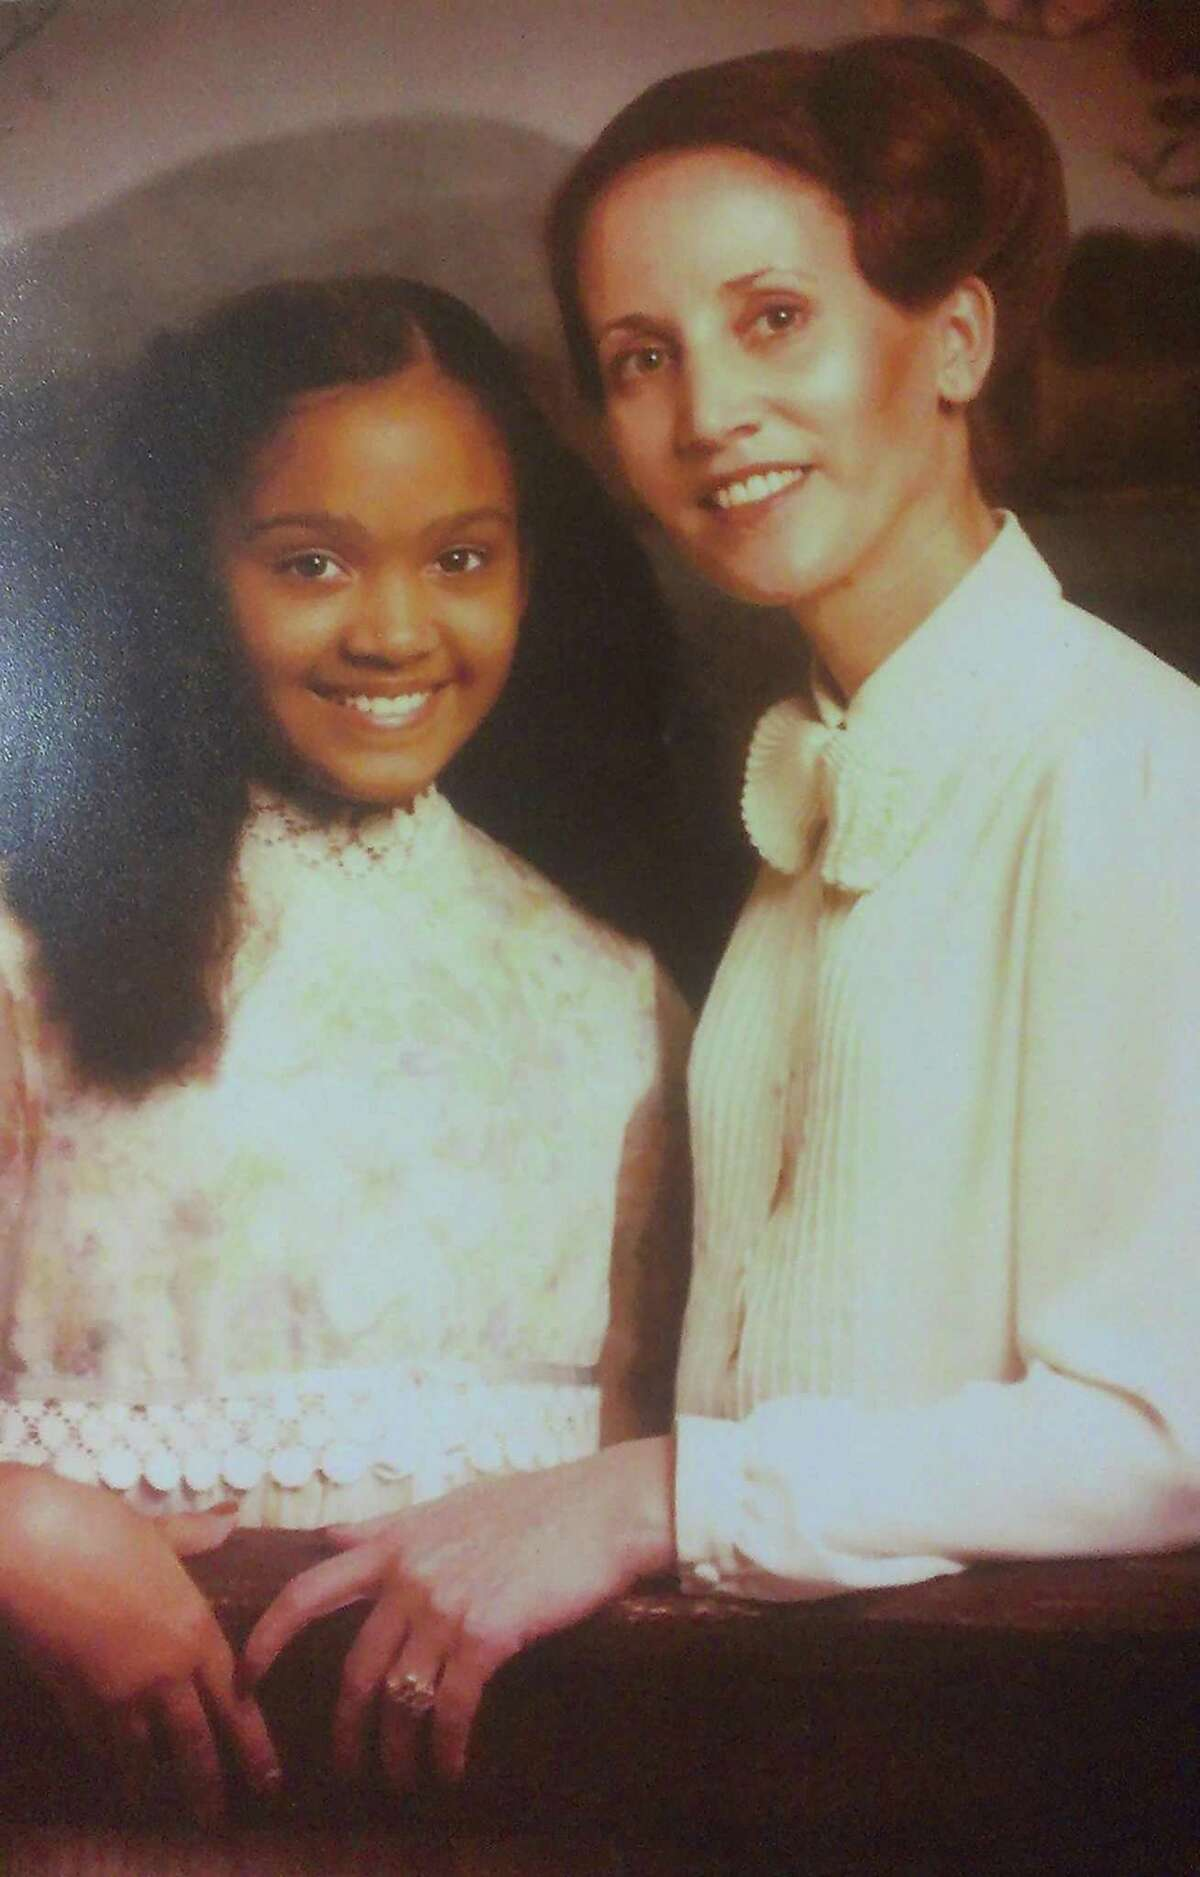 VeroniQue Shipley says she was called names as a child because of her biracial heritage, but her late mother, Joelle LeSage, a white woman from France, taught her to be proud of it. Shipley's father is Black.